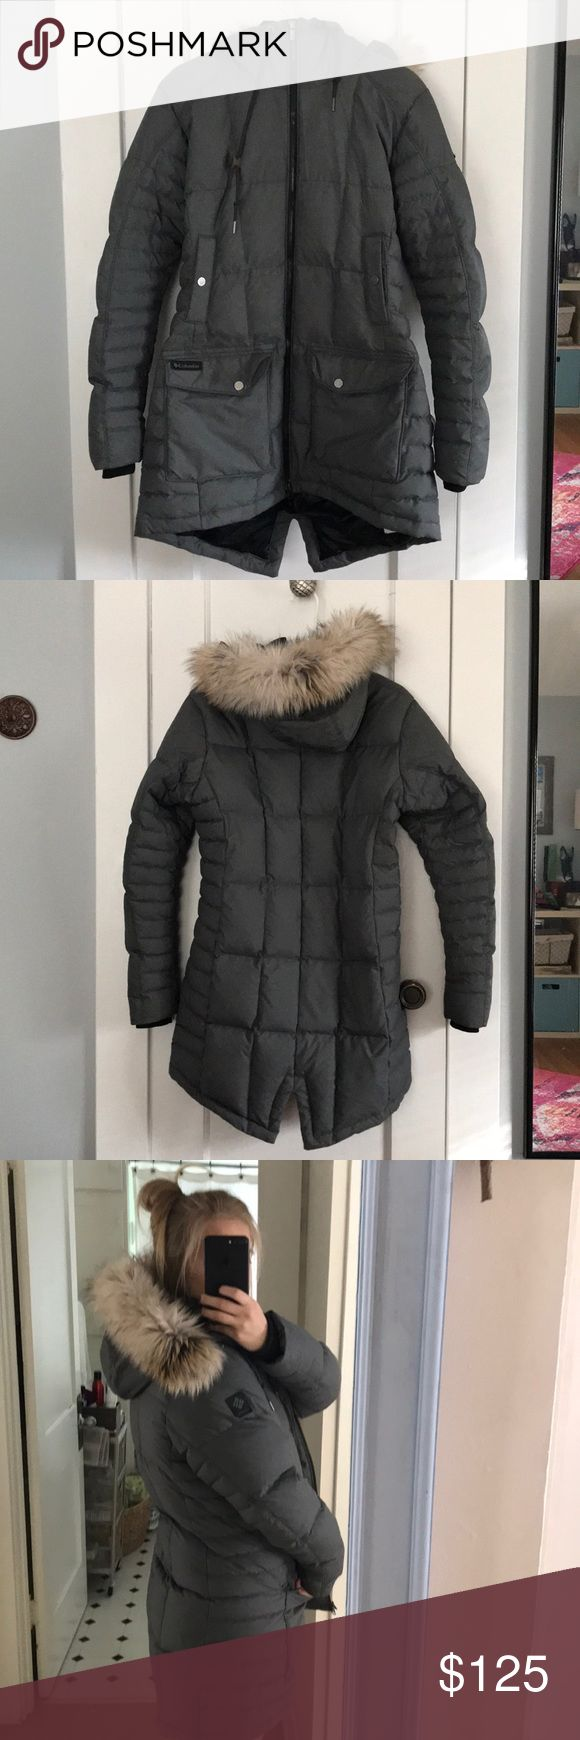 Columbia Outdoor Winter Jacket, size large BARELY WORN! Bought last year. Size large Columbia winter jacket. Inside with Omni-Heat sure to keep you warm! 4 outside pockets, one inside. Columbia Jackets & Coats Puffers